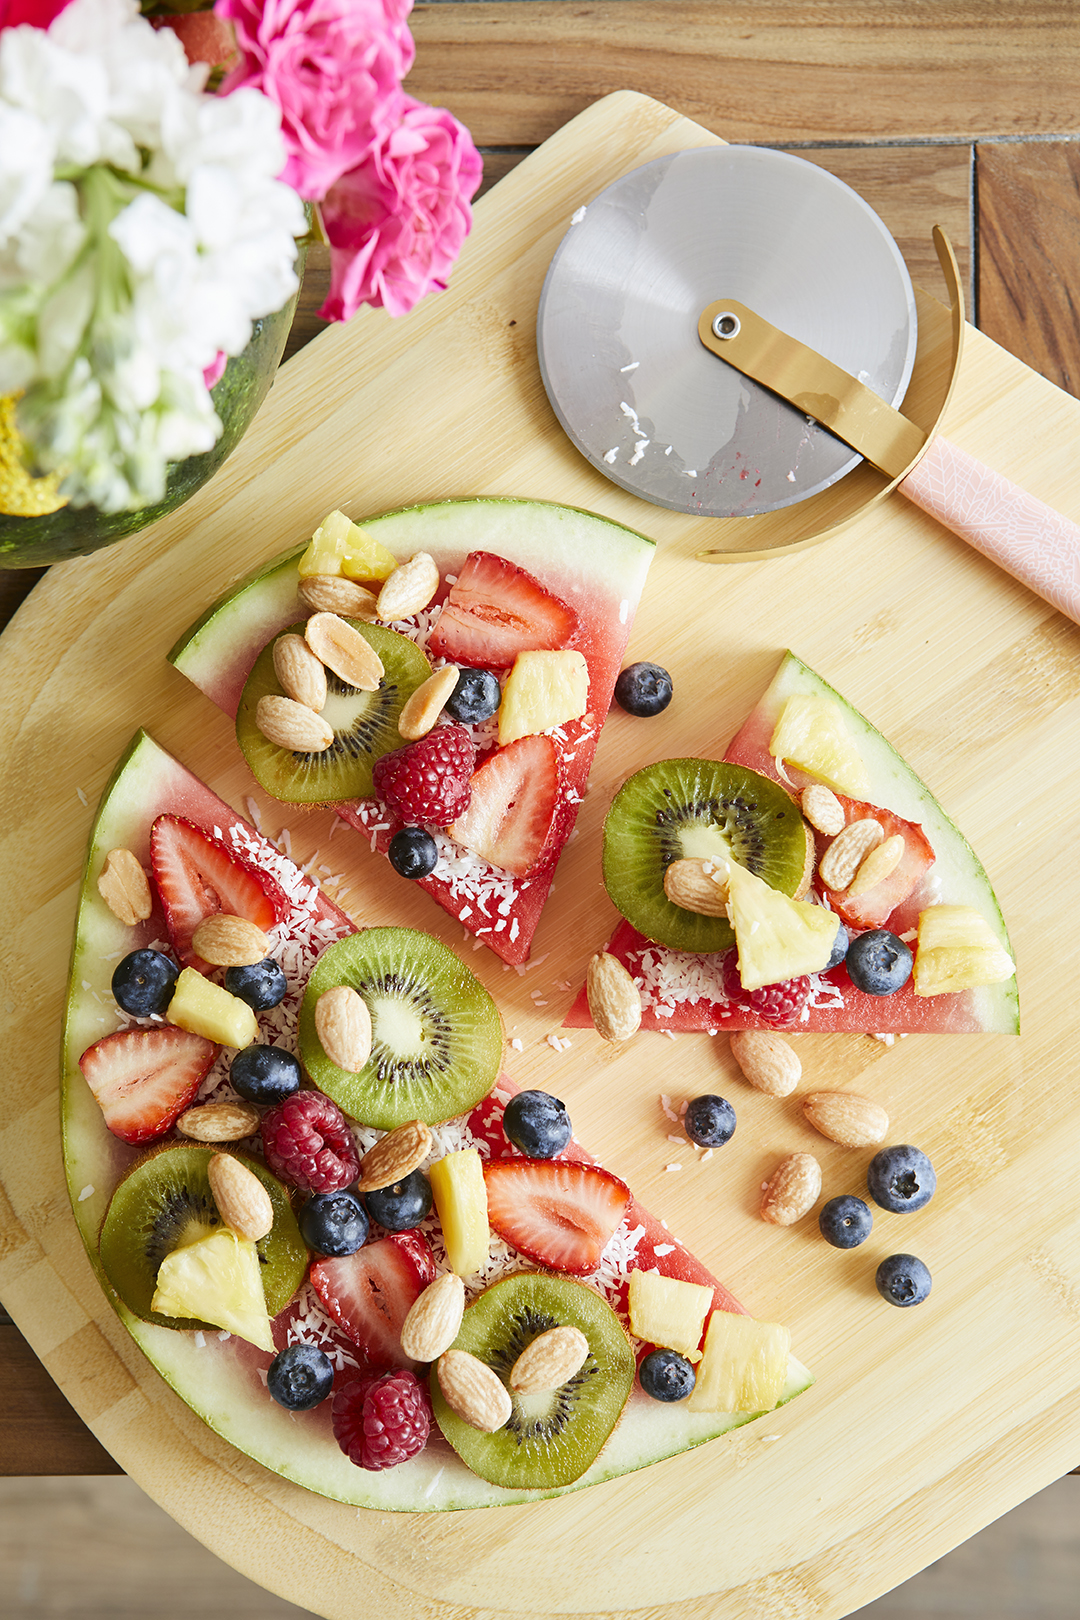 watermelon pizza topped with fruit and nuts